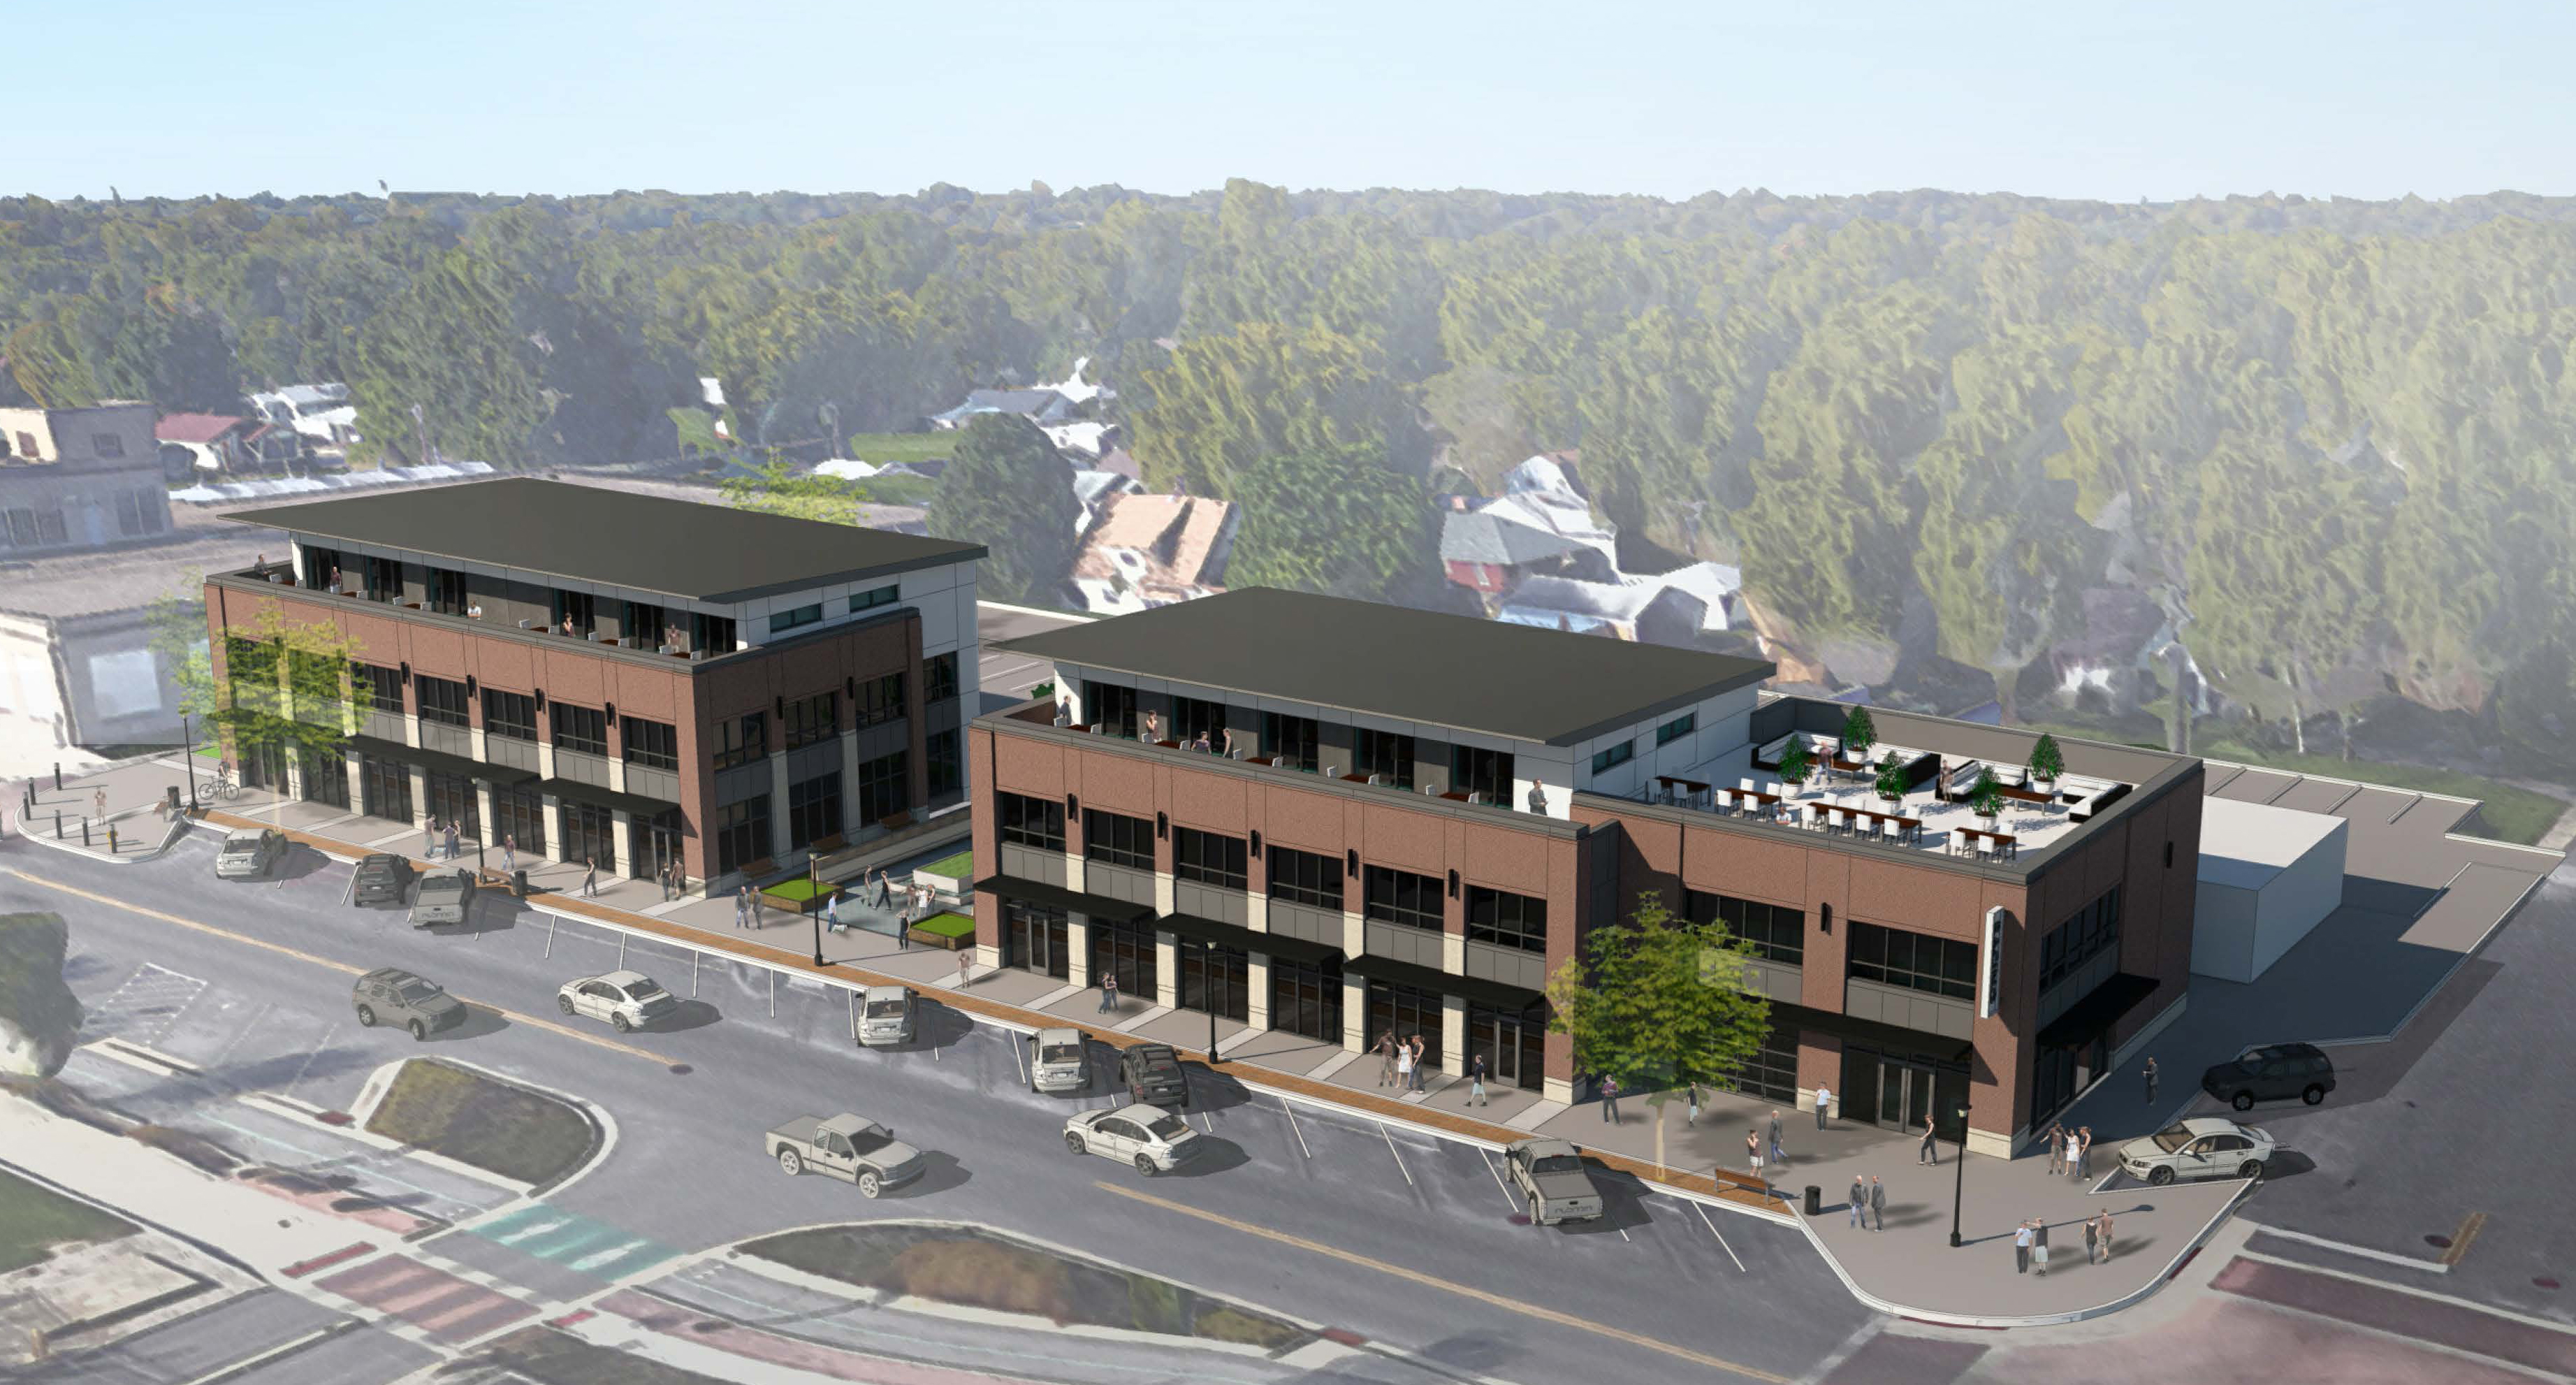 Rendering of a new redevelopment project in Speedway